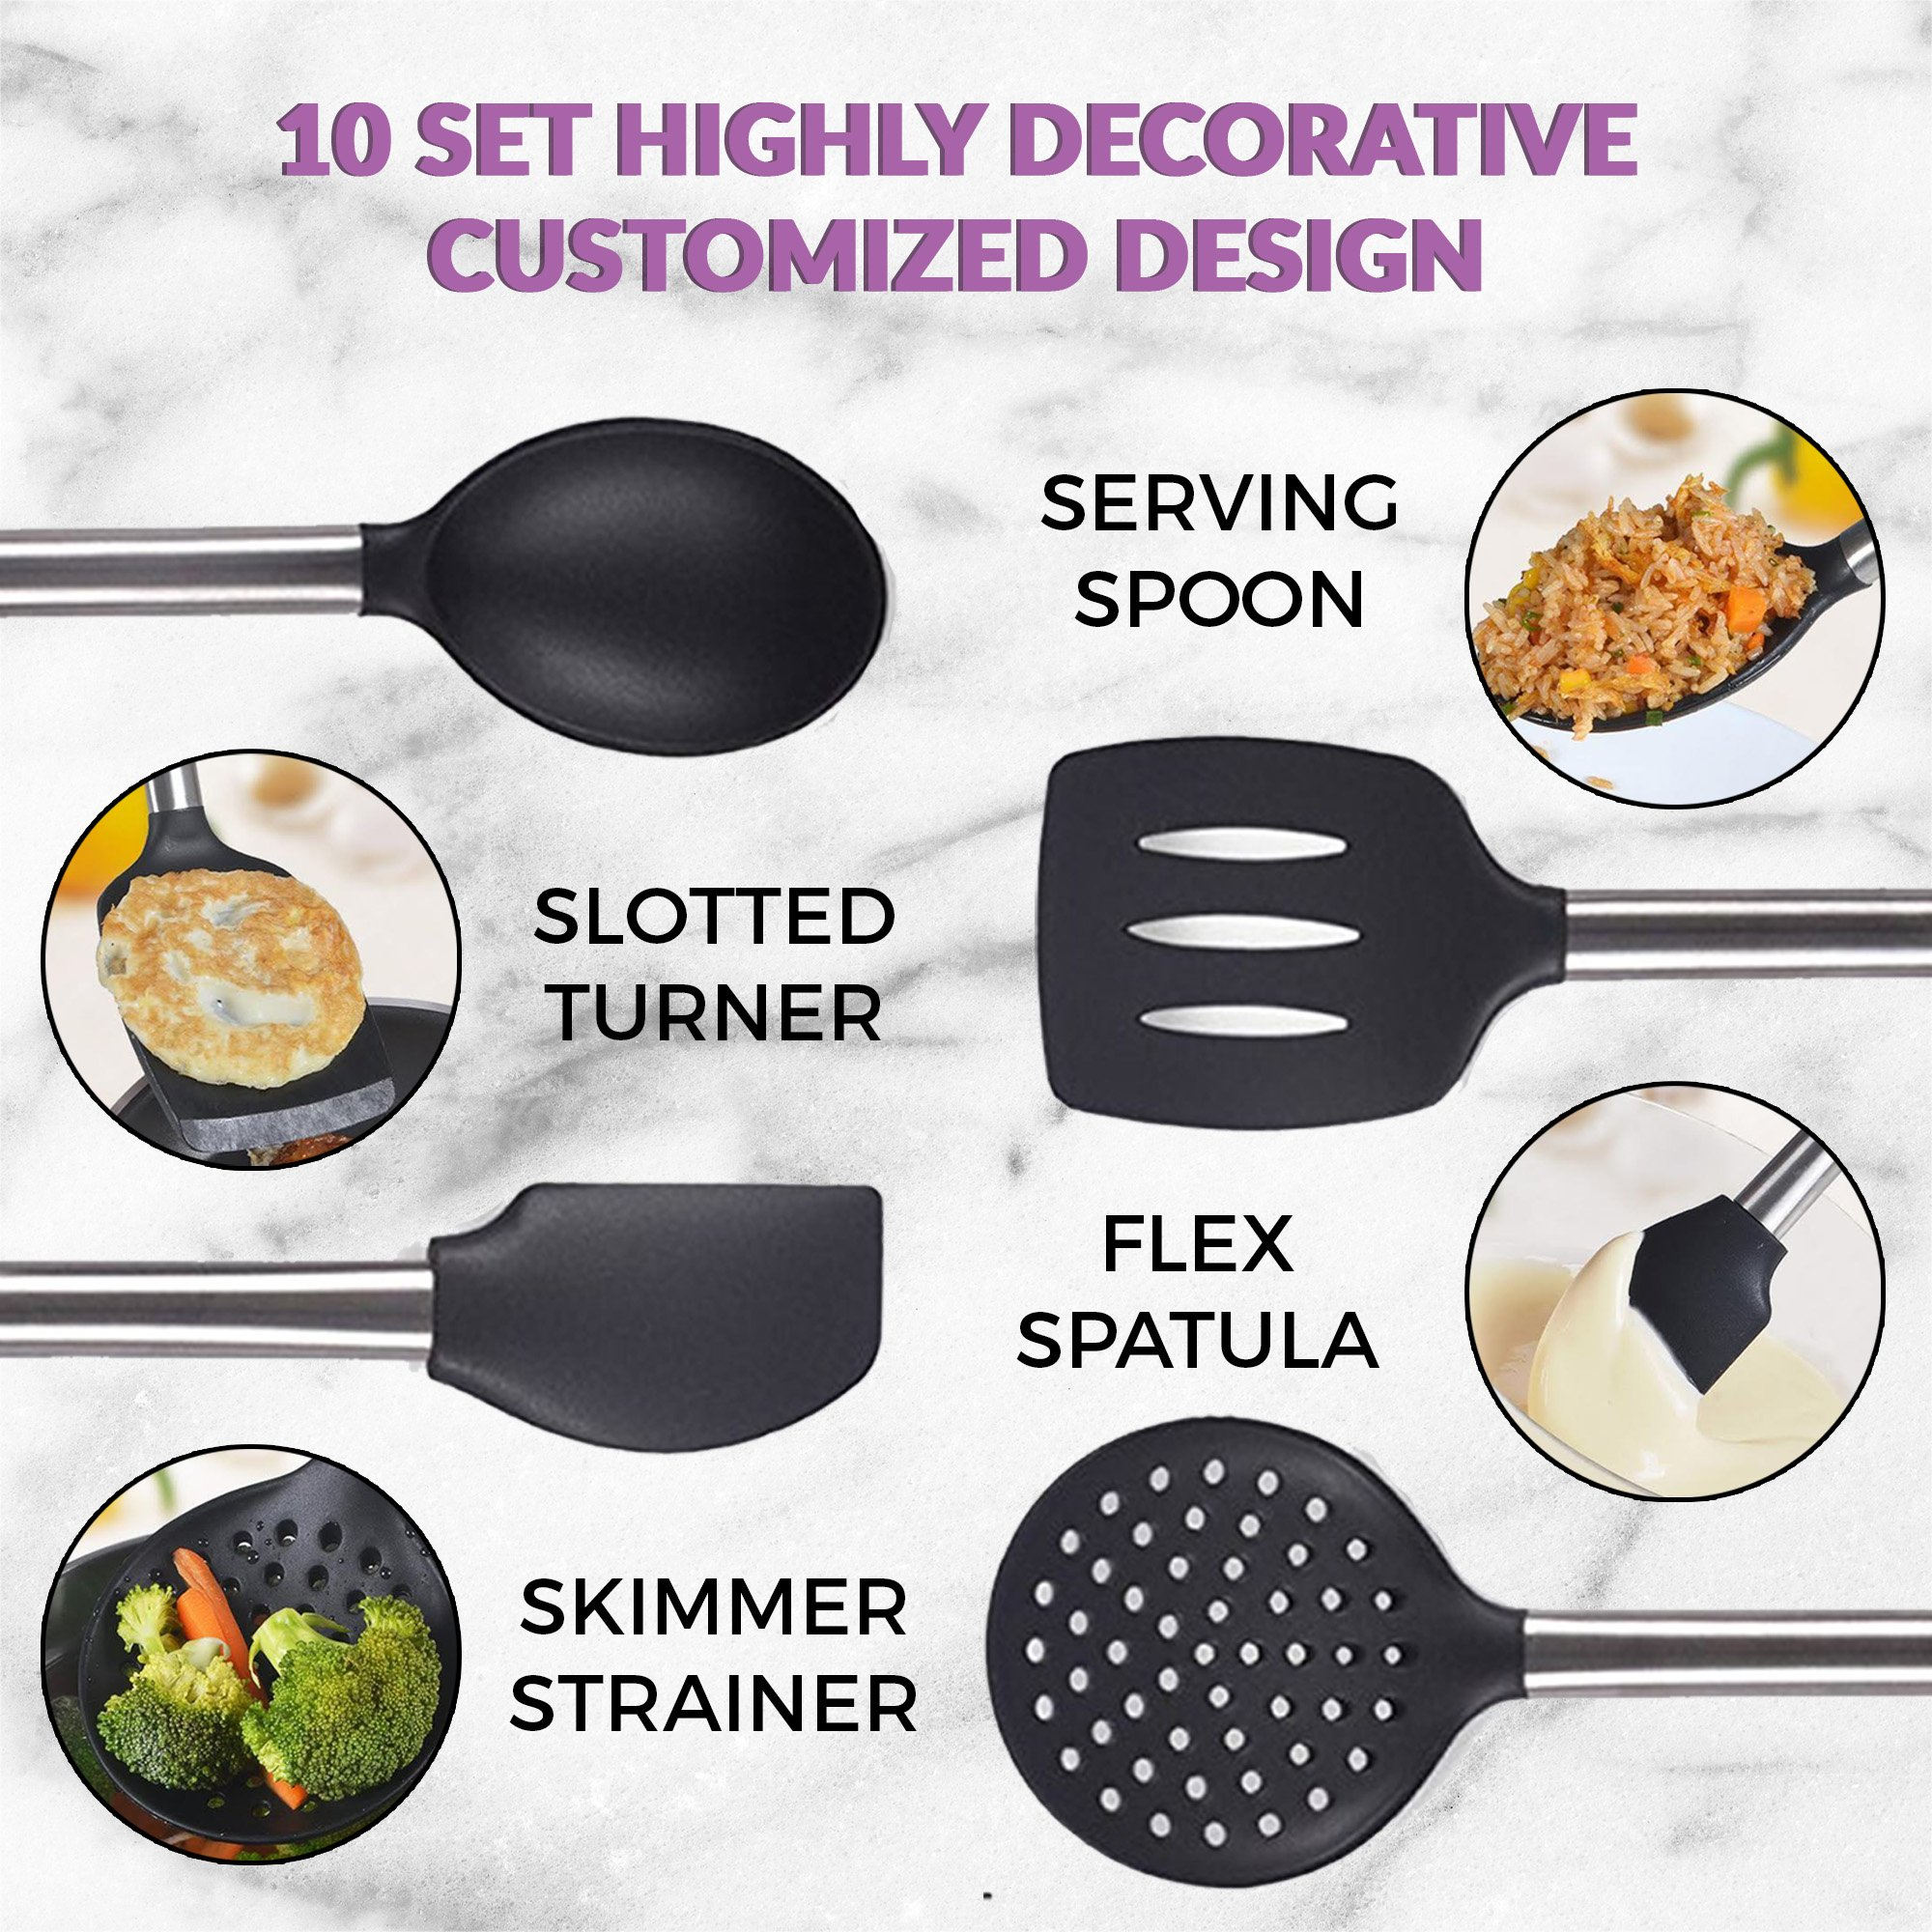 Kitchen Utensil 8 Set - Black Cooking Kit Manufactured with Metal Heavy Duty Stainless Steel and No Plastic BPA Free High Heat Resistant Silicone - Dishwasher Safe Utensils with Waterproof Handles by Black Belt Kitchen (Image #8)